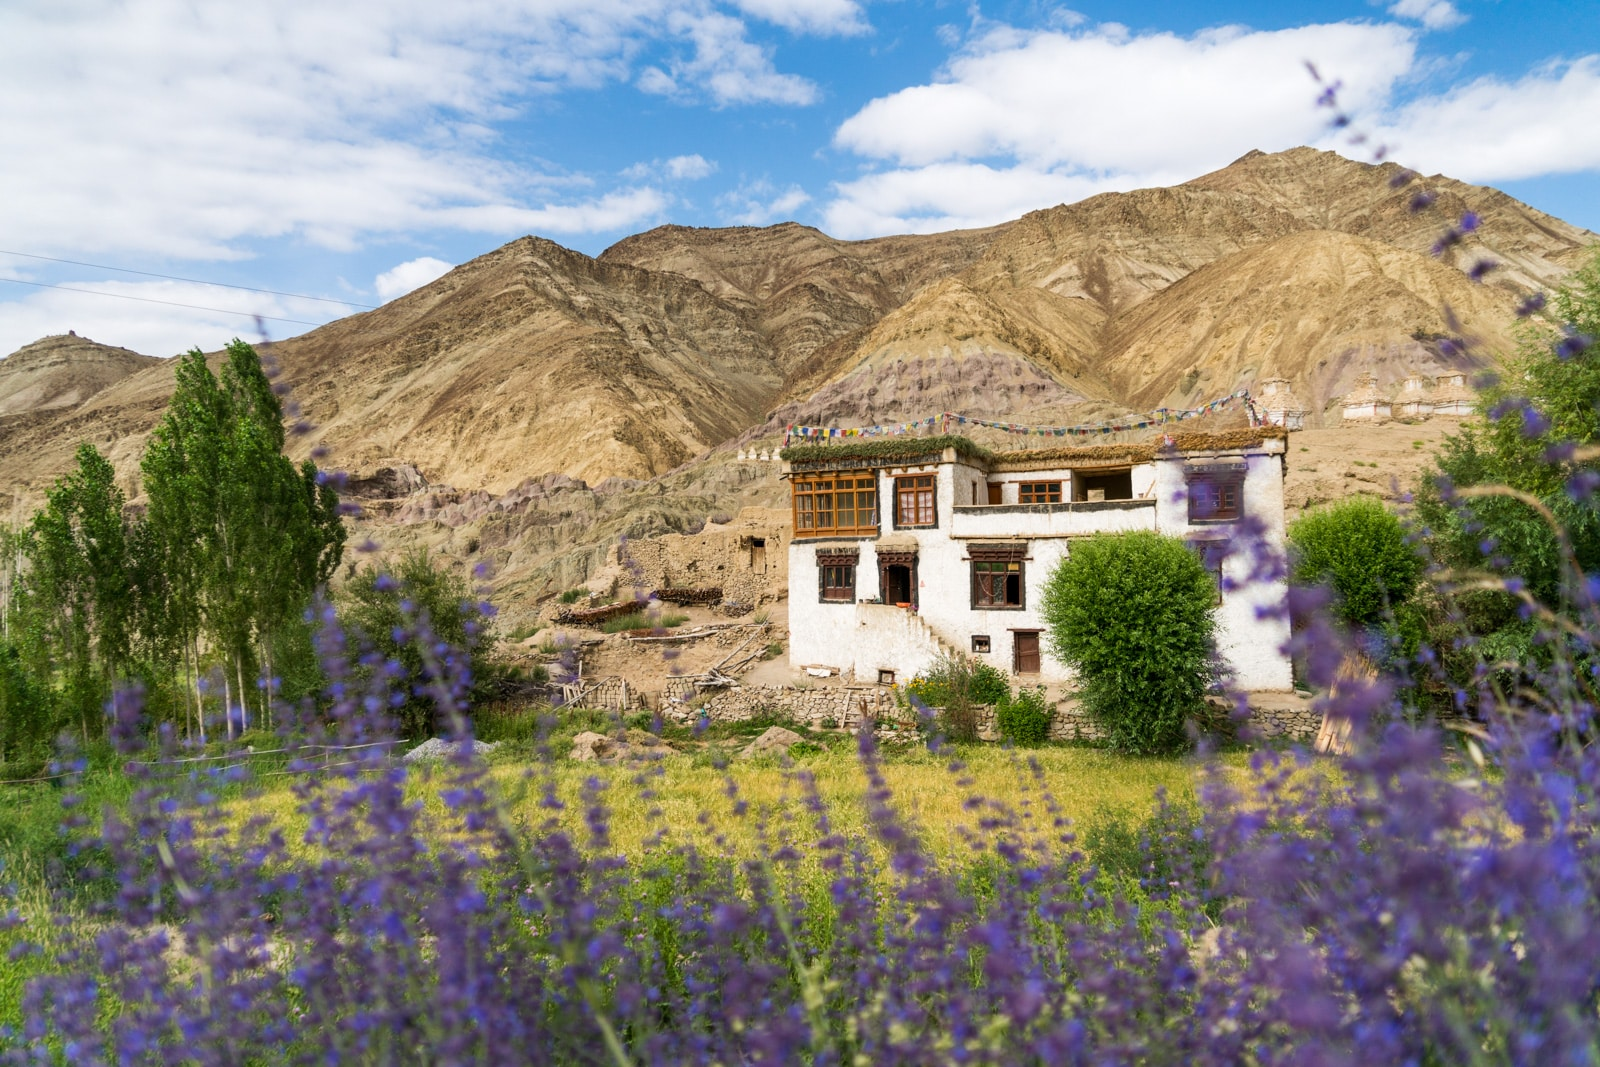 Short 3-day itinerary and guide to the Sham Valley trek in Ladakh, India - Traditional home in Likir with purple flowers - Lost With Purpose travel blog